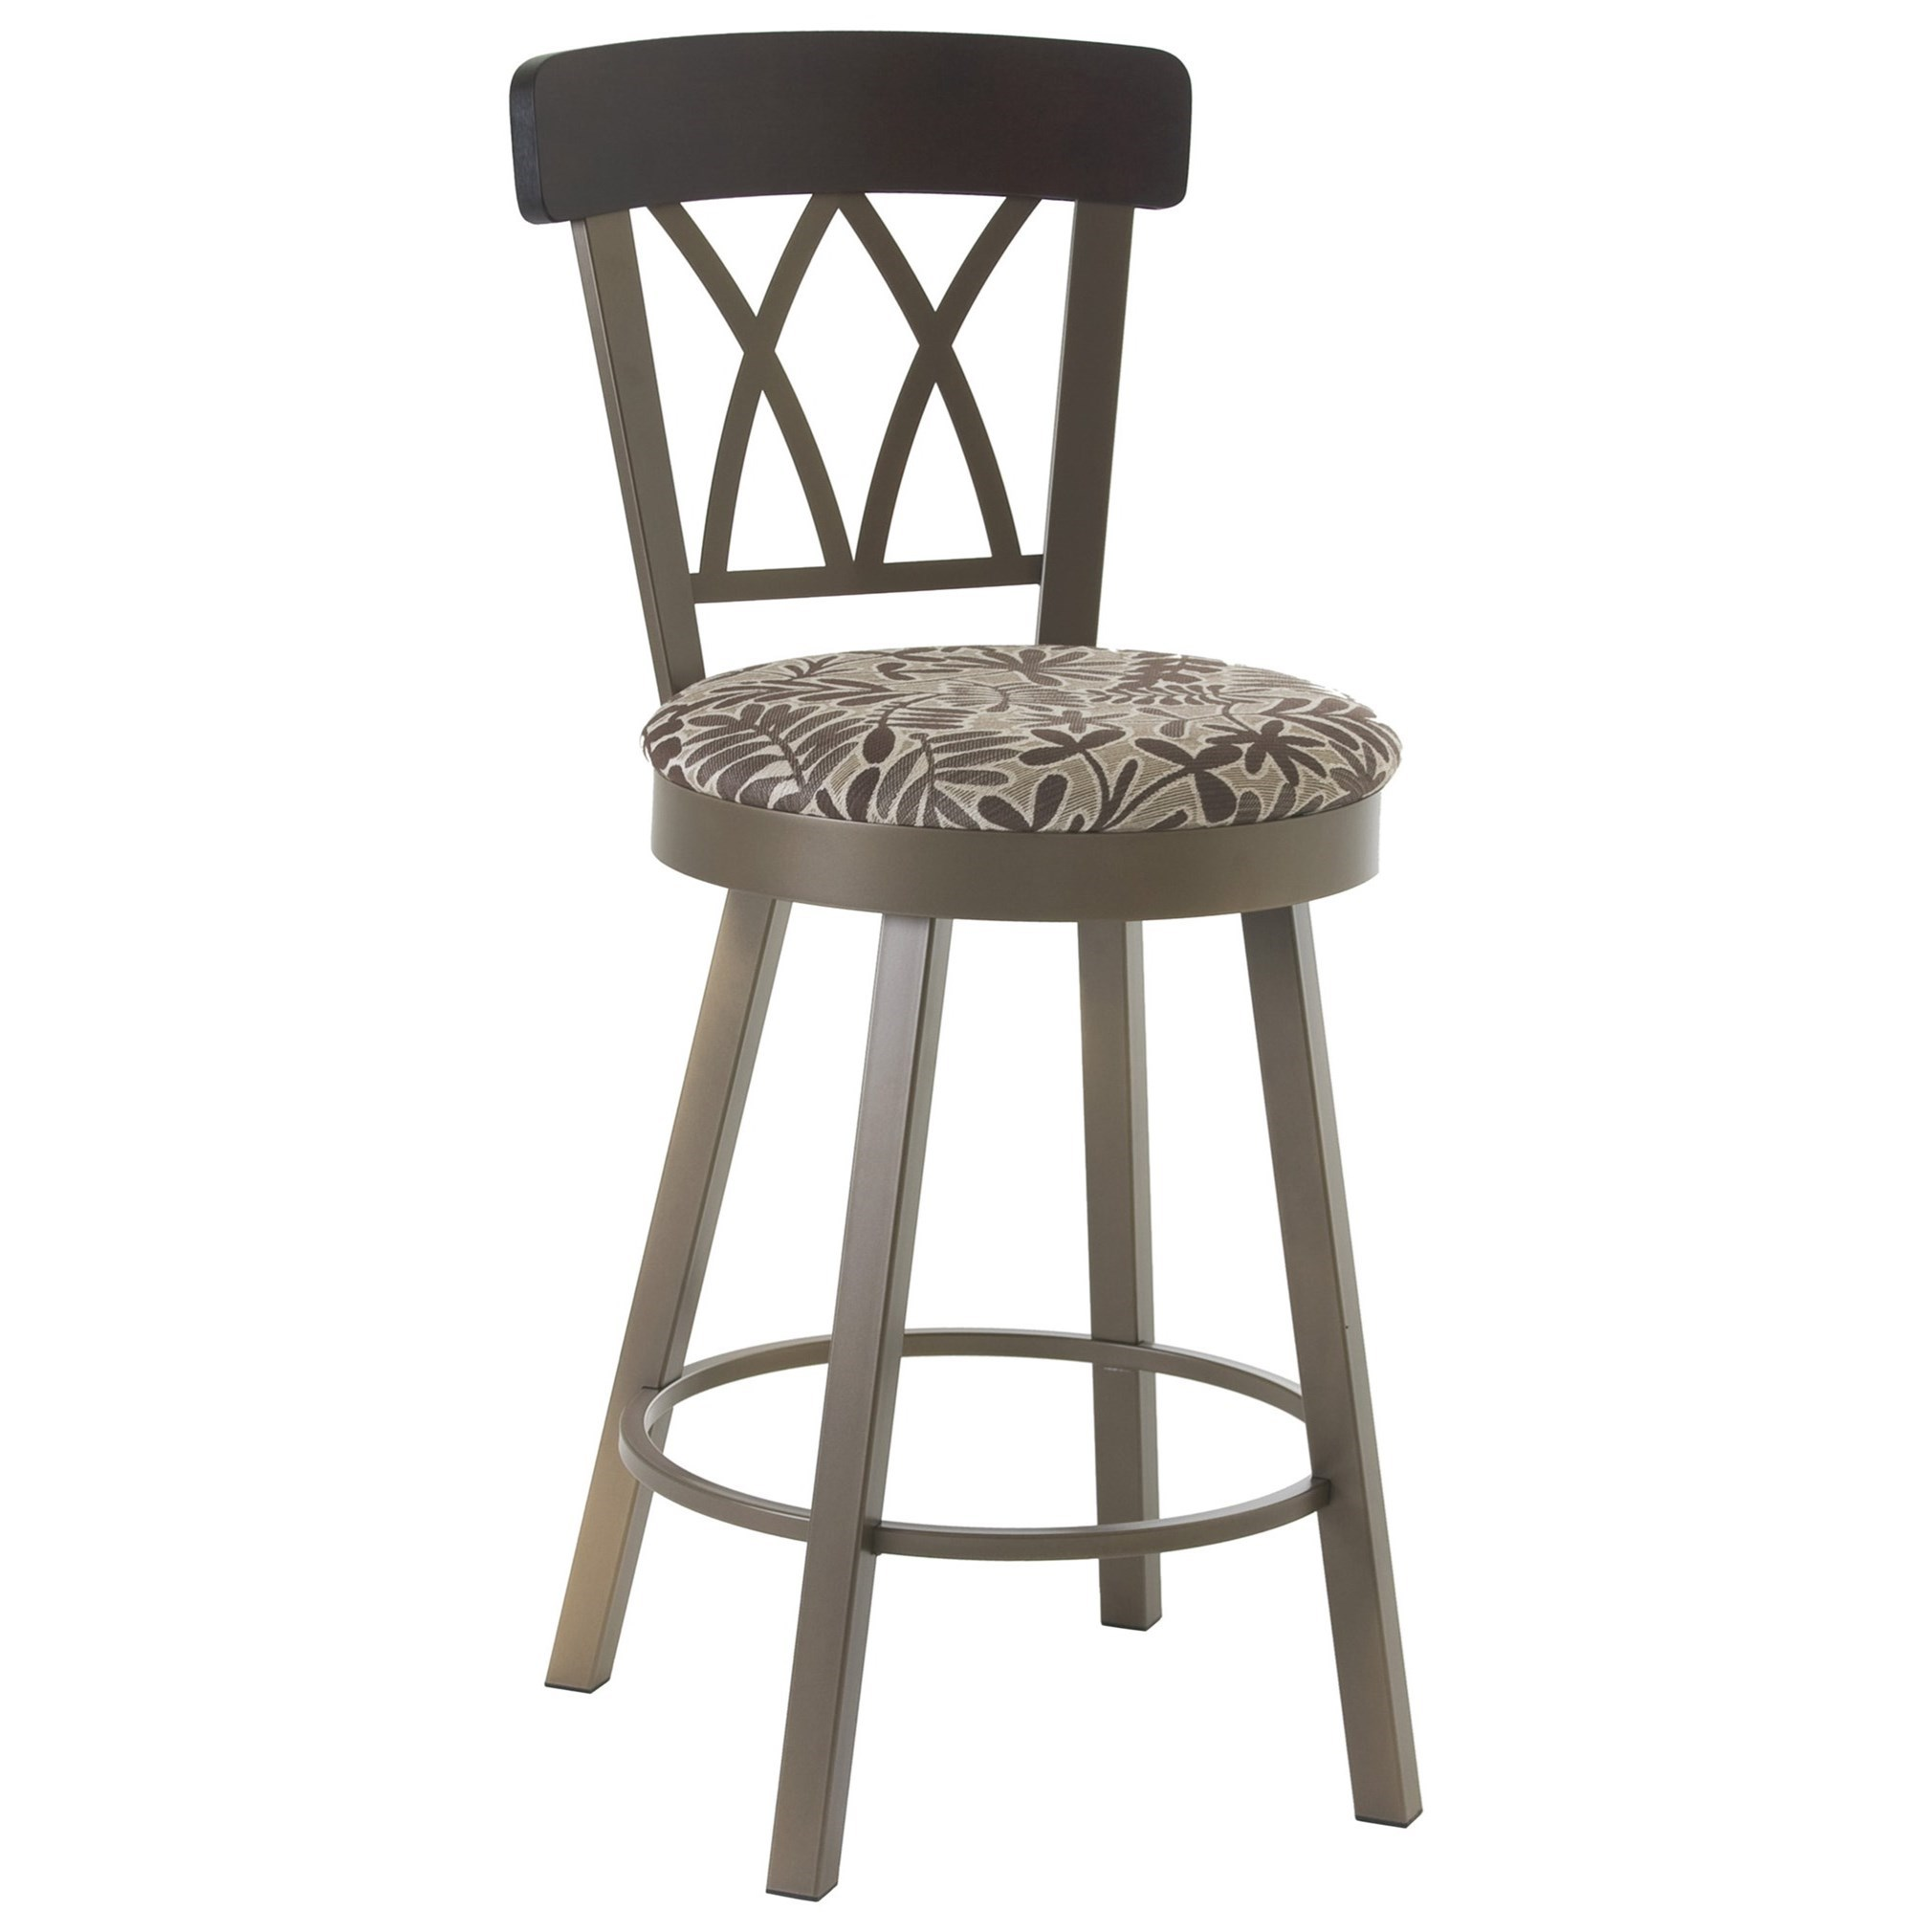 "34"" Brittany Spectator Height Swivel Stool"